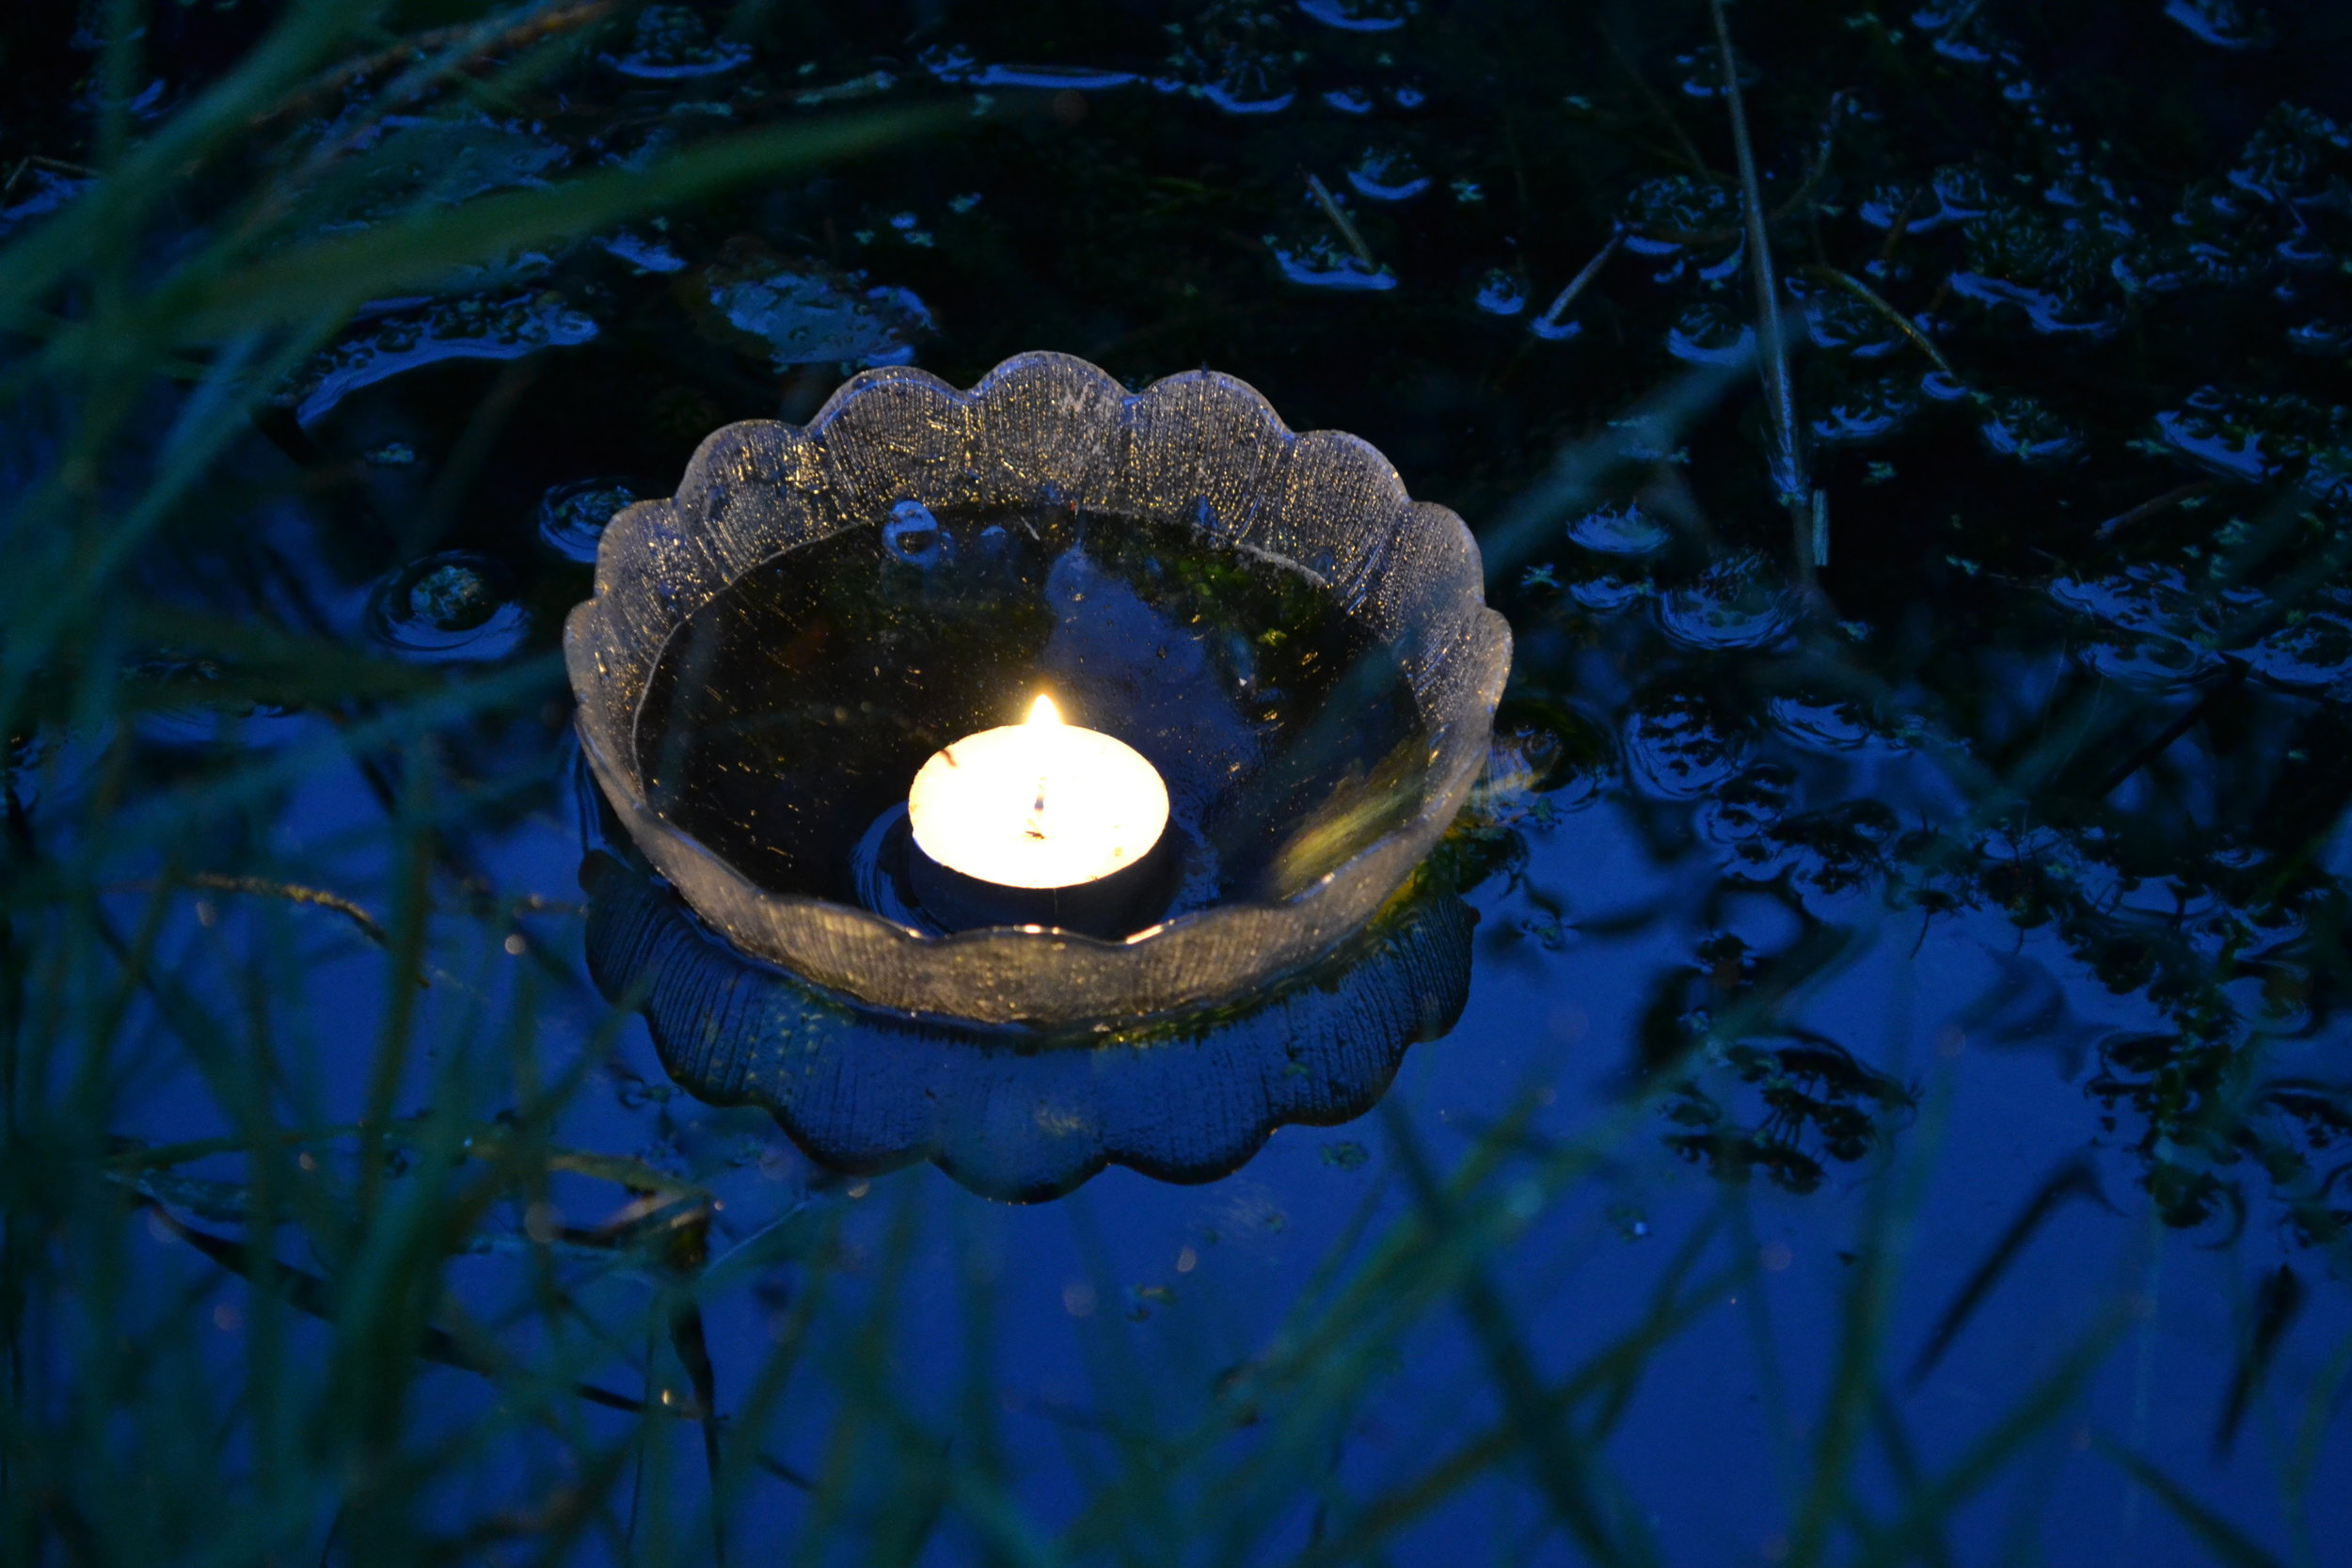 Candles on the pond